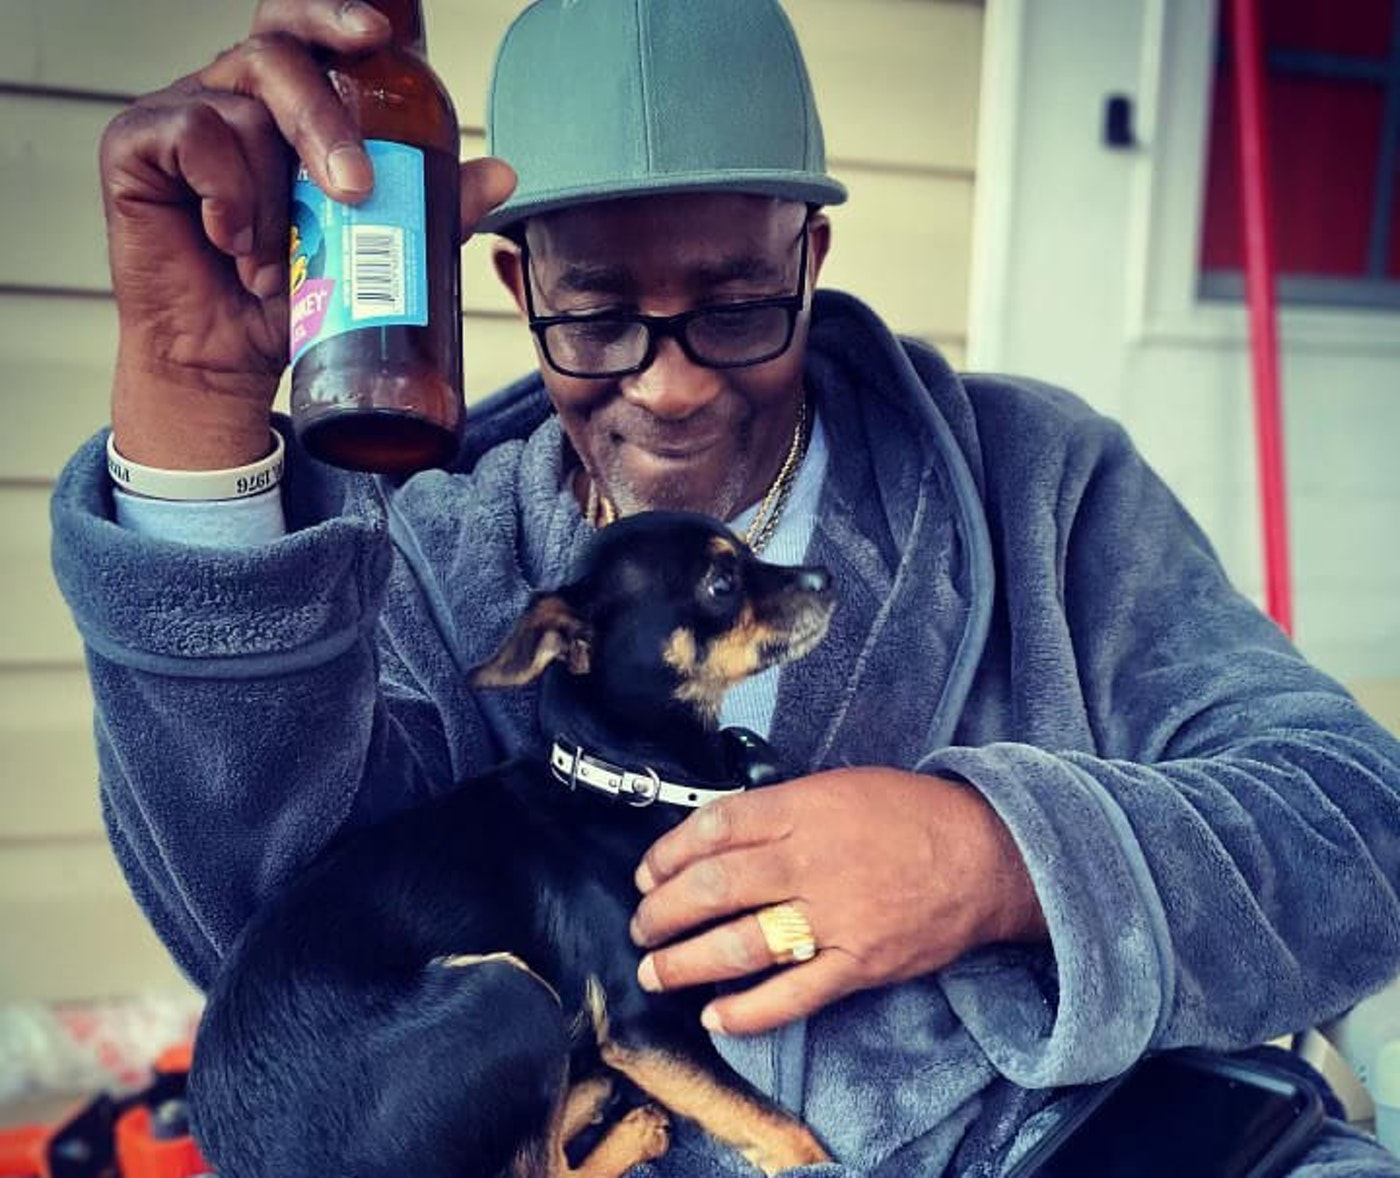 Kicking back at his Durham home after more than 40 years of wrongful imprisonment, Ronnie Long is still waiting on an official pardon from NC Gov. Roy Cooper. (Image via Ashleigh Long)